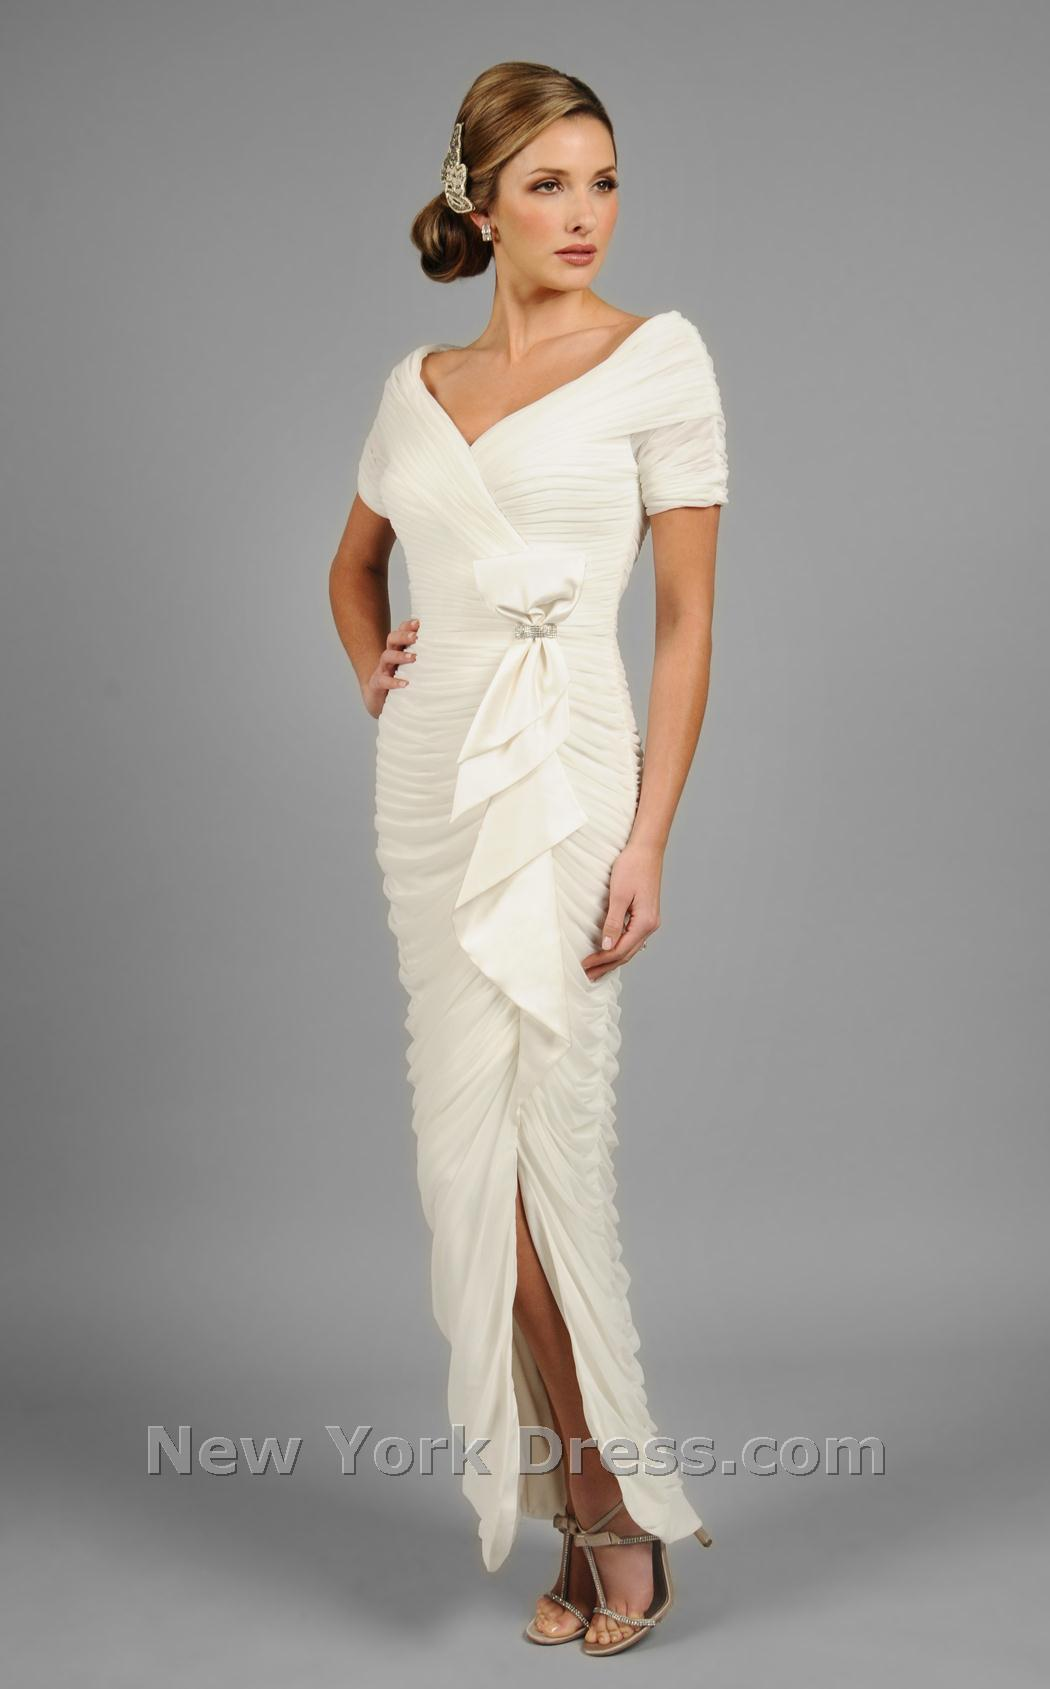 Mature Wedding Dresses Tips On Where And How To Buy Them